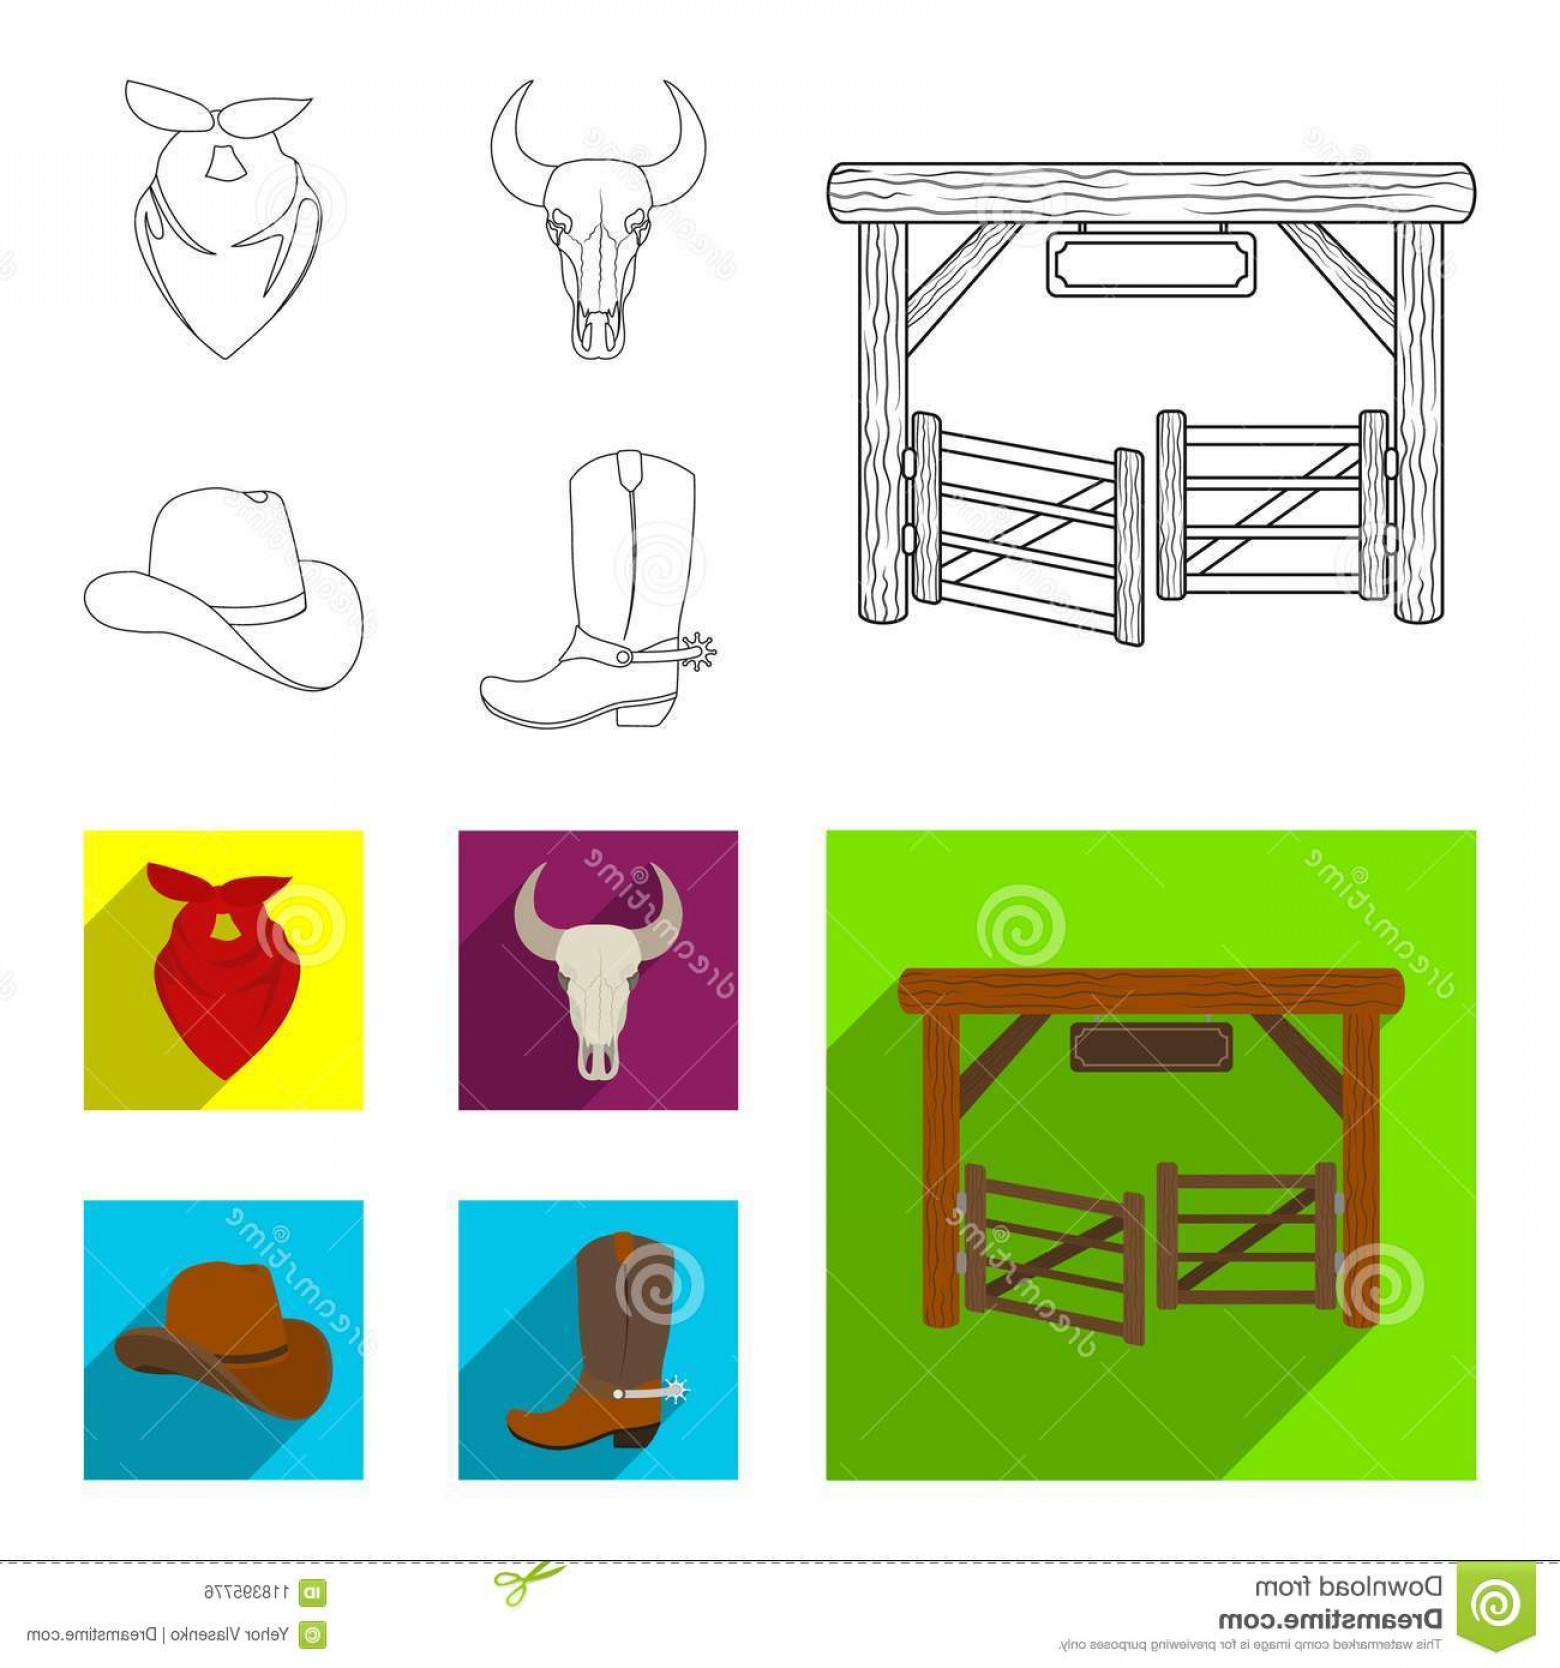 Spurs Clip Art Vector: Gates Bull Skull Scarf Around His Neck Boots Spurs Rodeo Set Collection Icons Outline Flat Style Vector Gates Bull Image